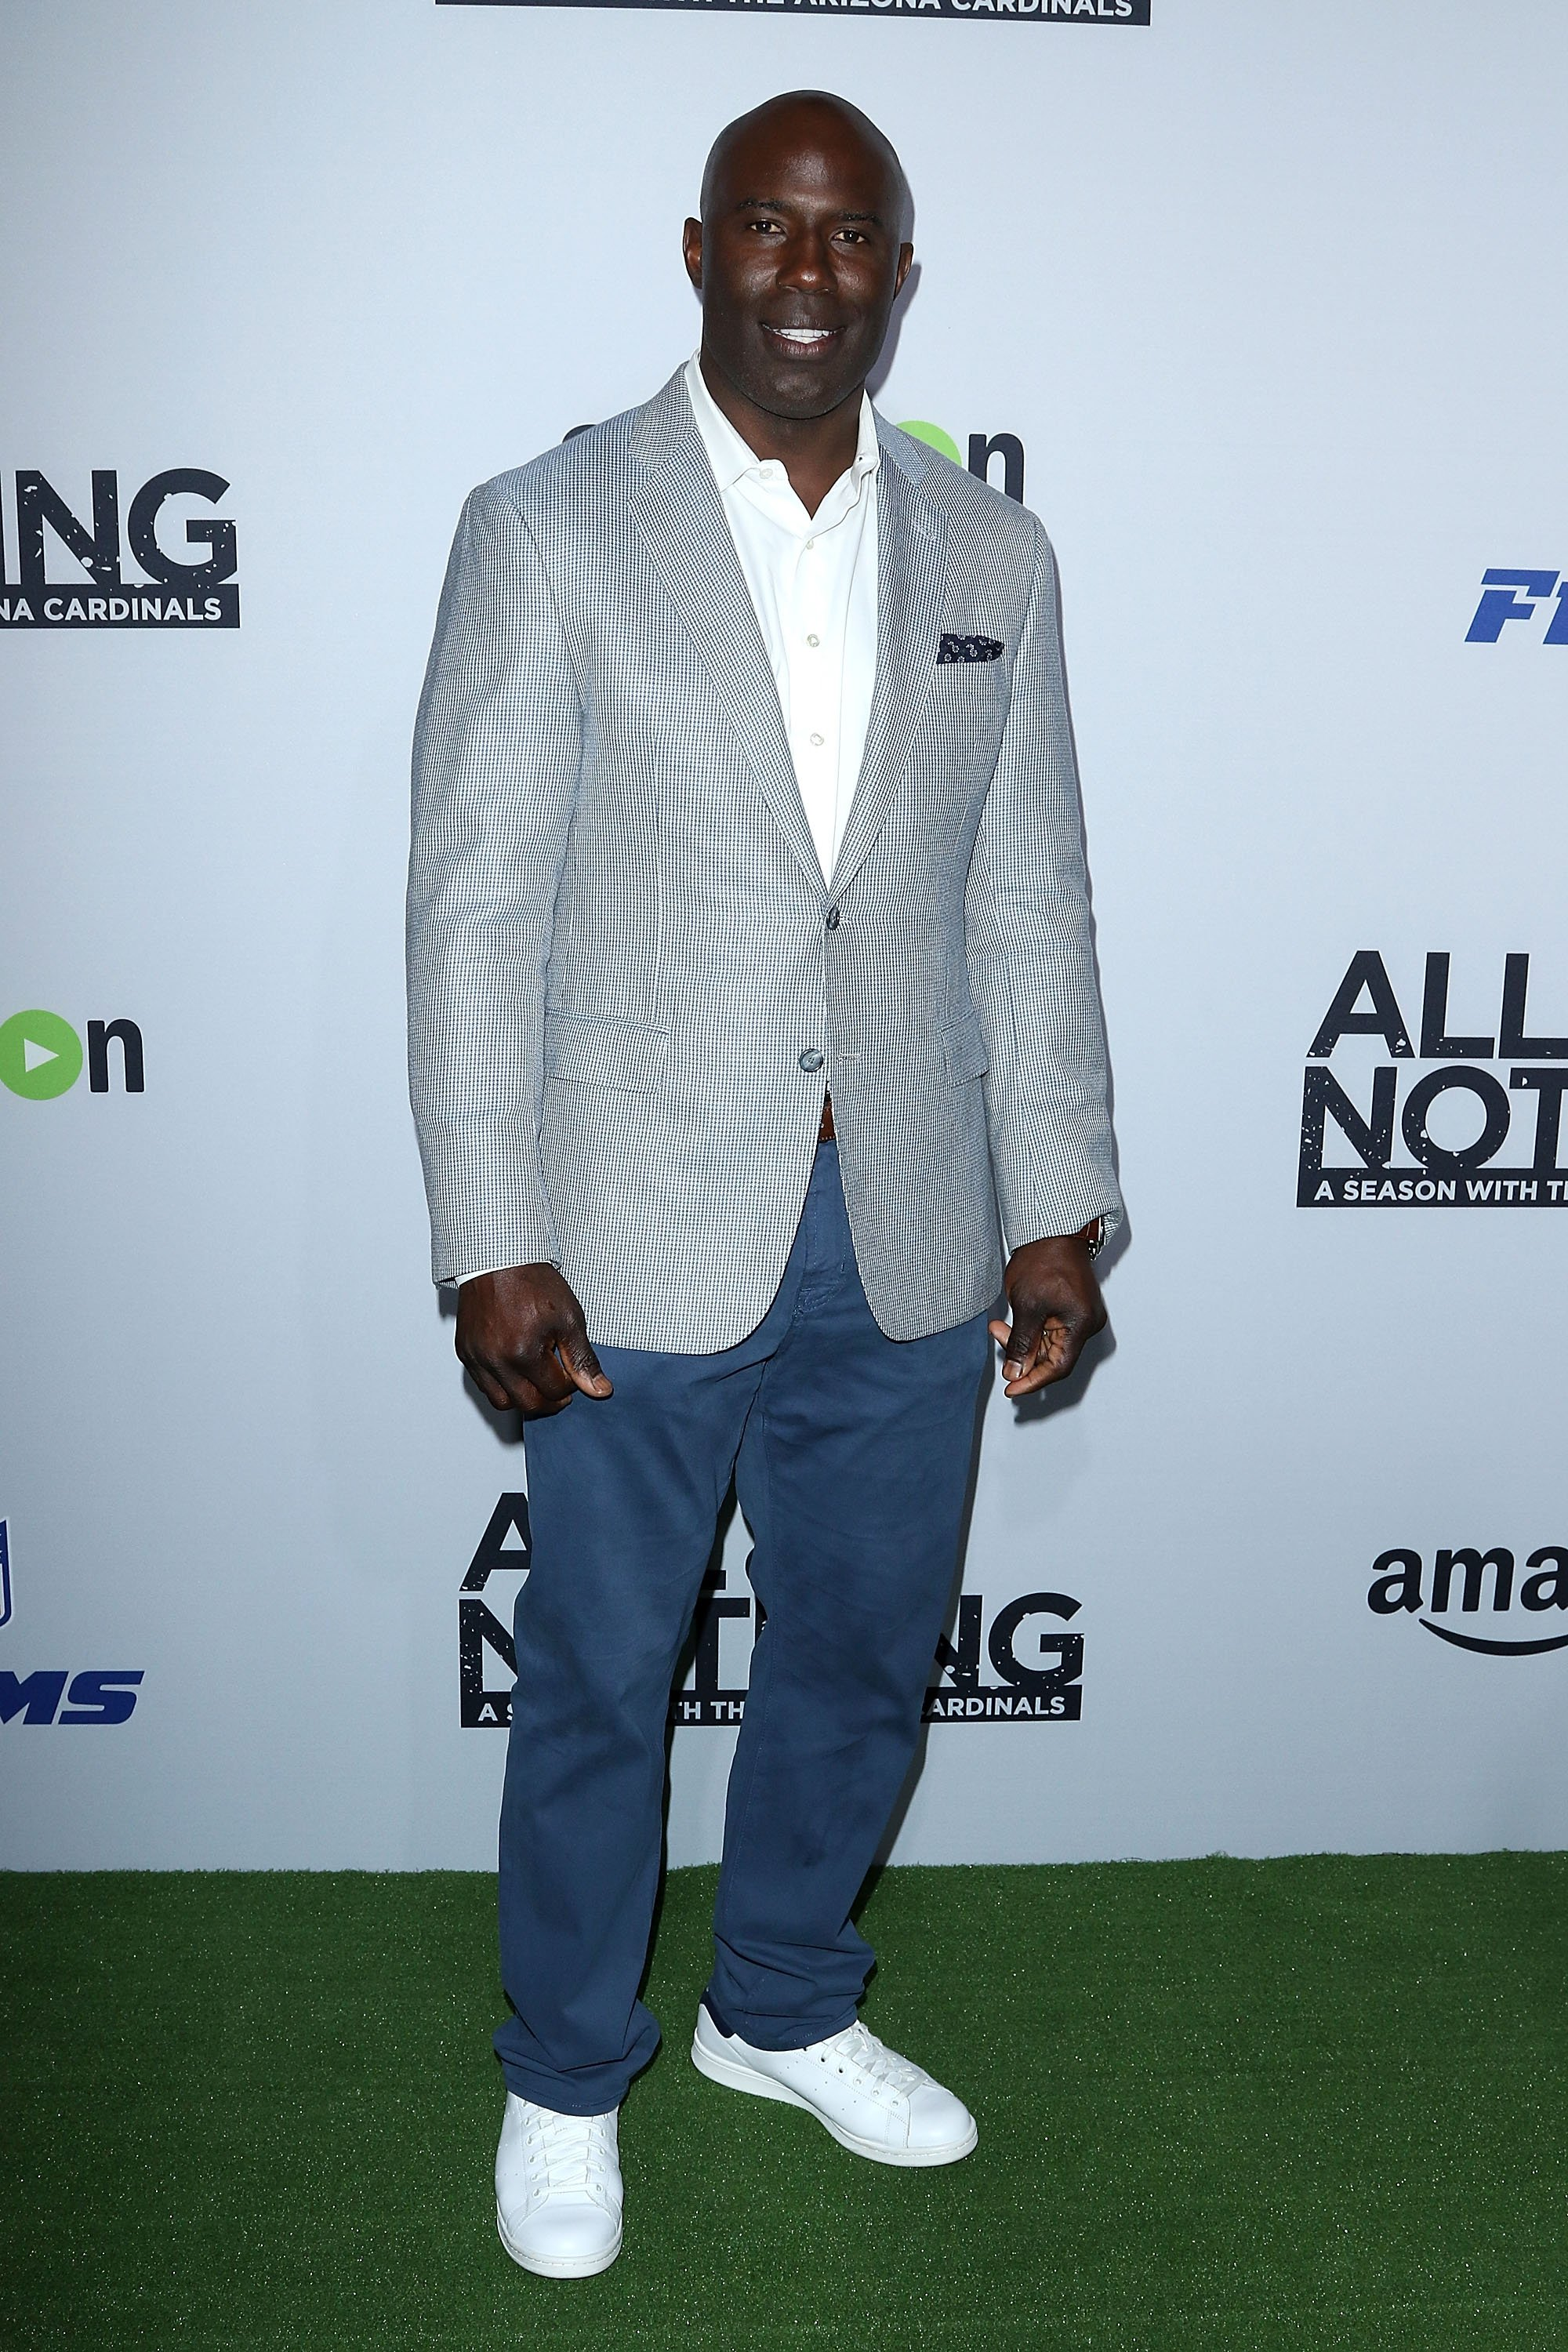 Terrell Davis attends the premiere of Amazon Video's 'All Or Nothing: A Season with The Arizona Cardinals' at Tom's Urban at L.A. Live on June 9, 2016 in Los Angeles, California. | Photo: GettyImages